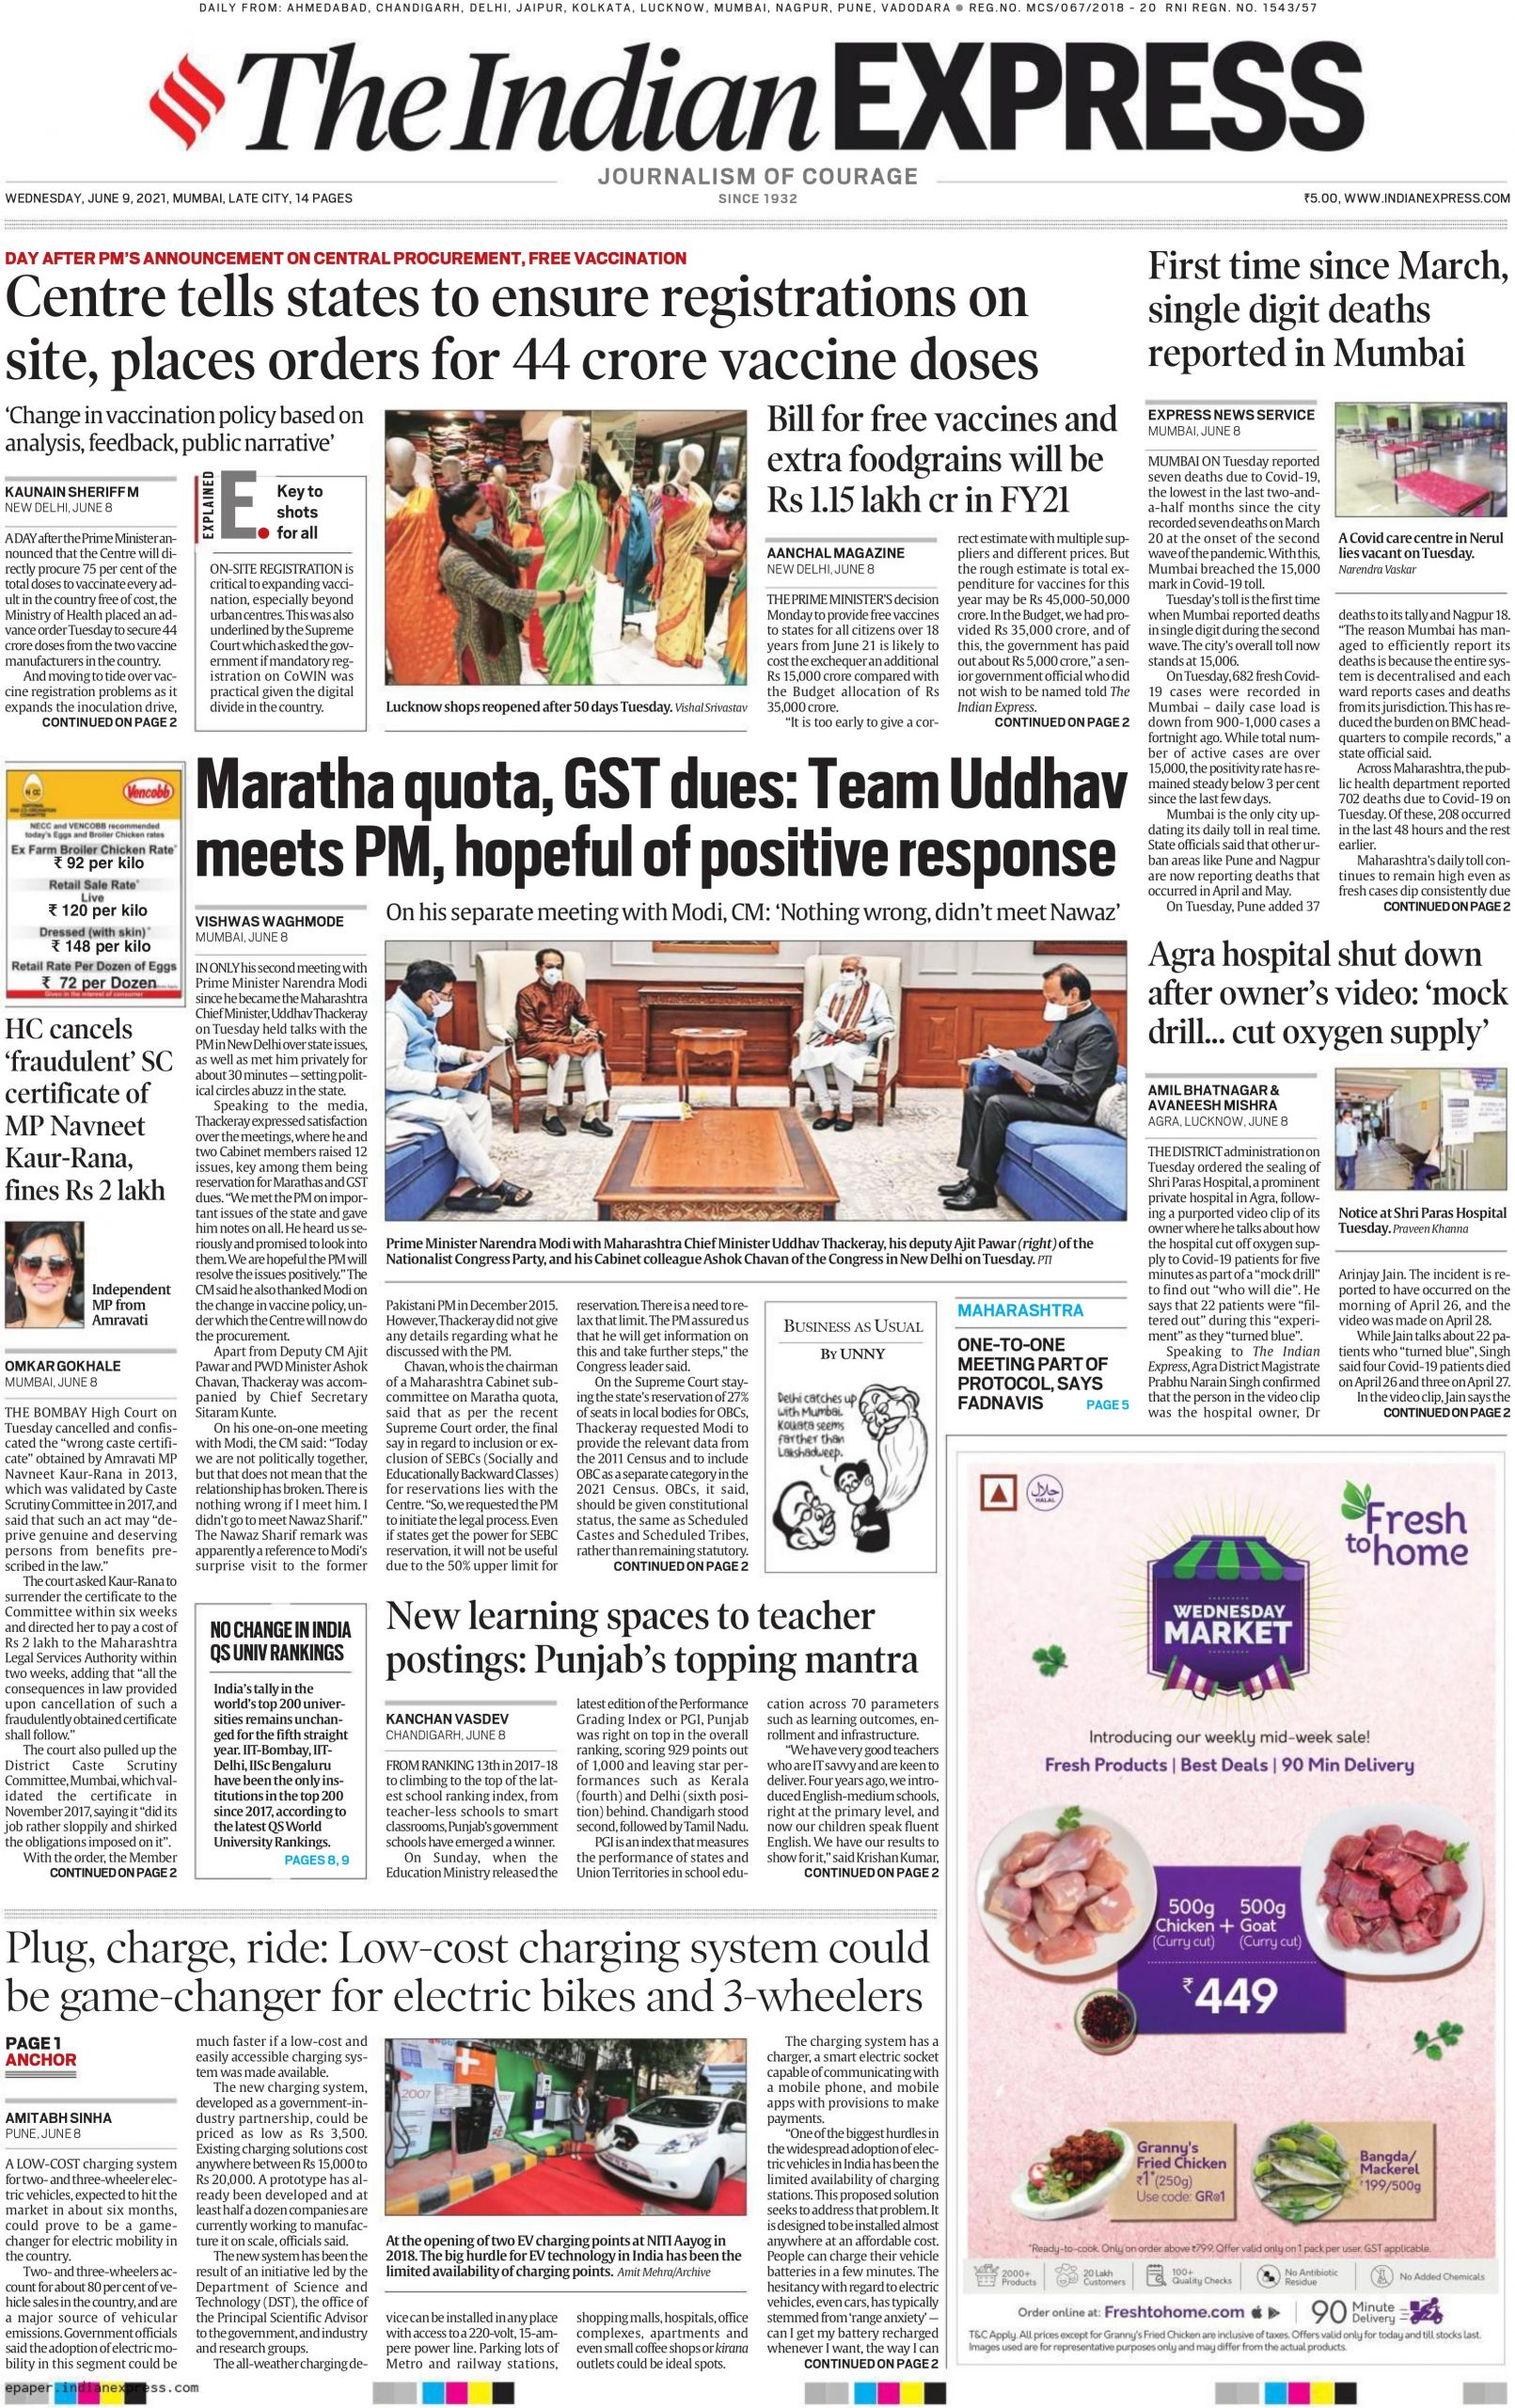 The Indian Express 9th June 2021